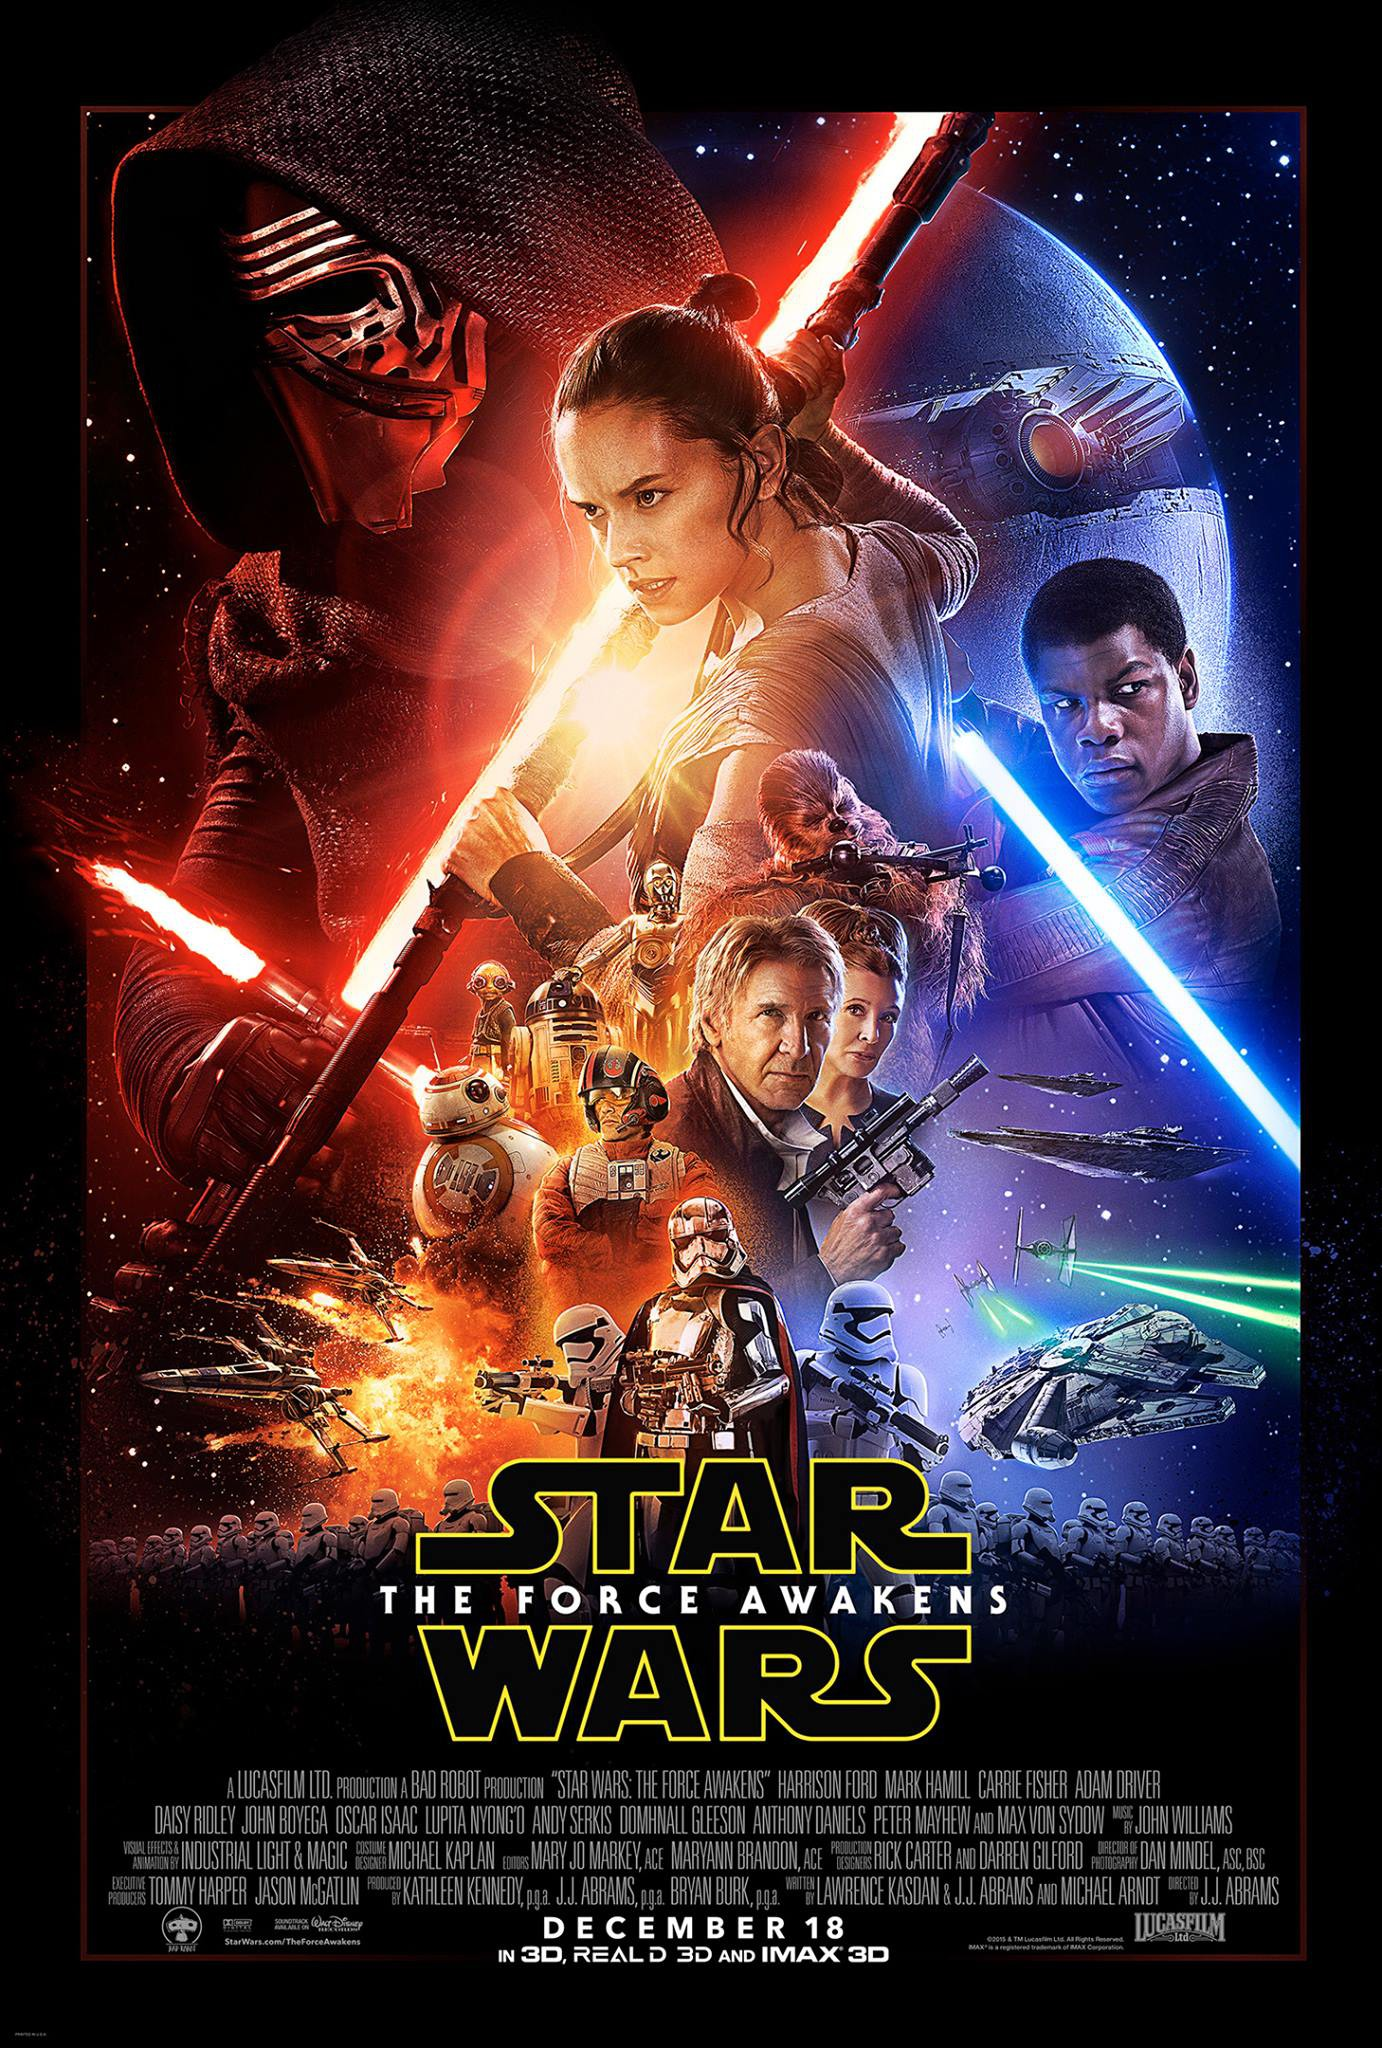 All Movie Posters and Prints for Star Wars: The Force Awakens